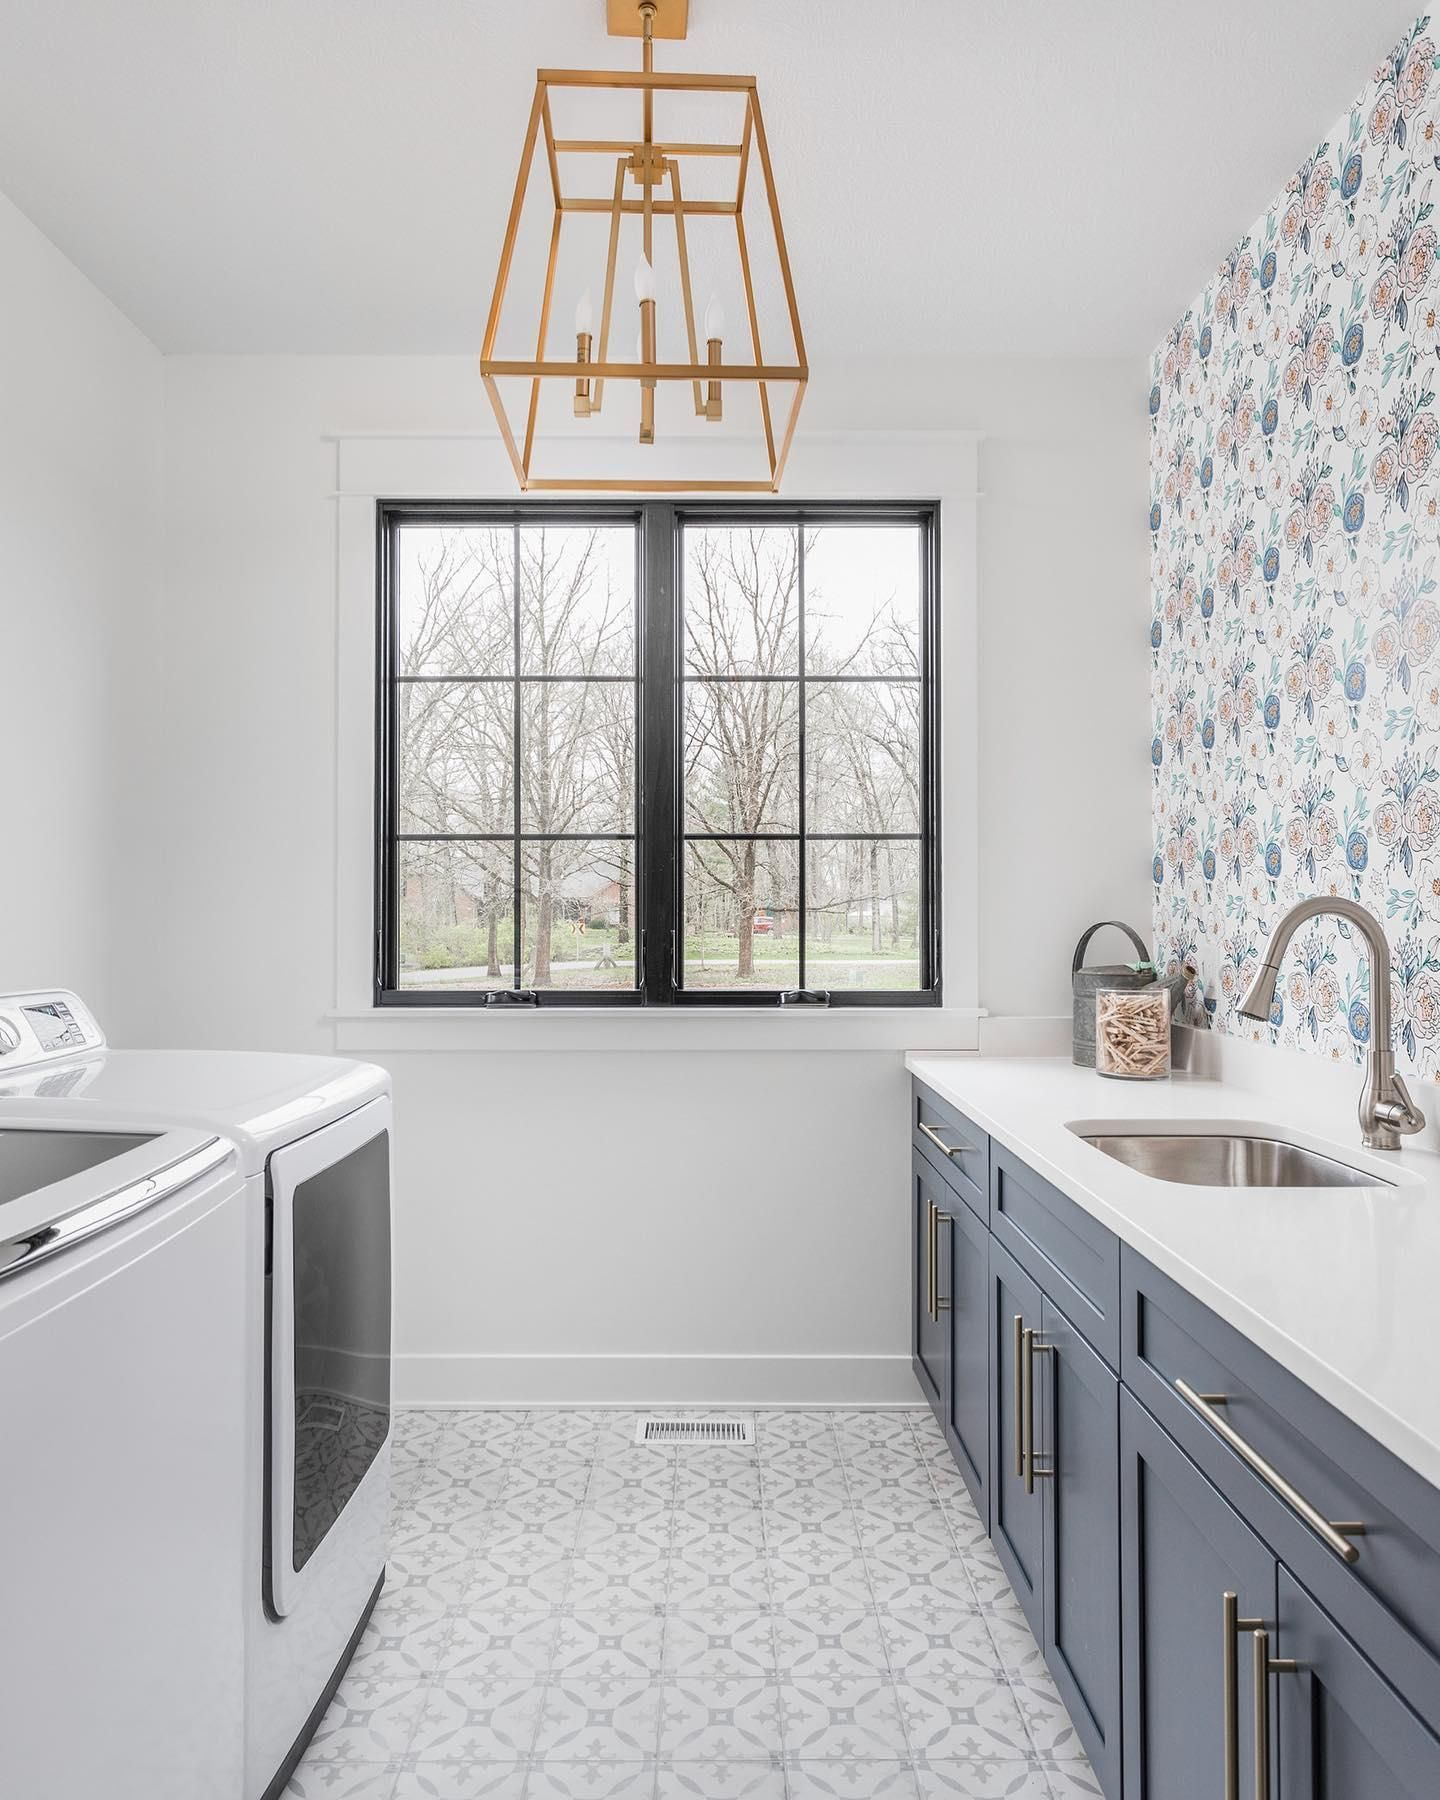 We Re Dishing Out The Inspiration With Over 20 Colorful Patterned And Stunning Encaustic Cement And Encaus Laundry Room Tile Laundry Room Diy Best Floor Tiles